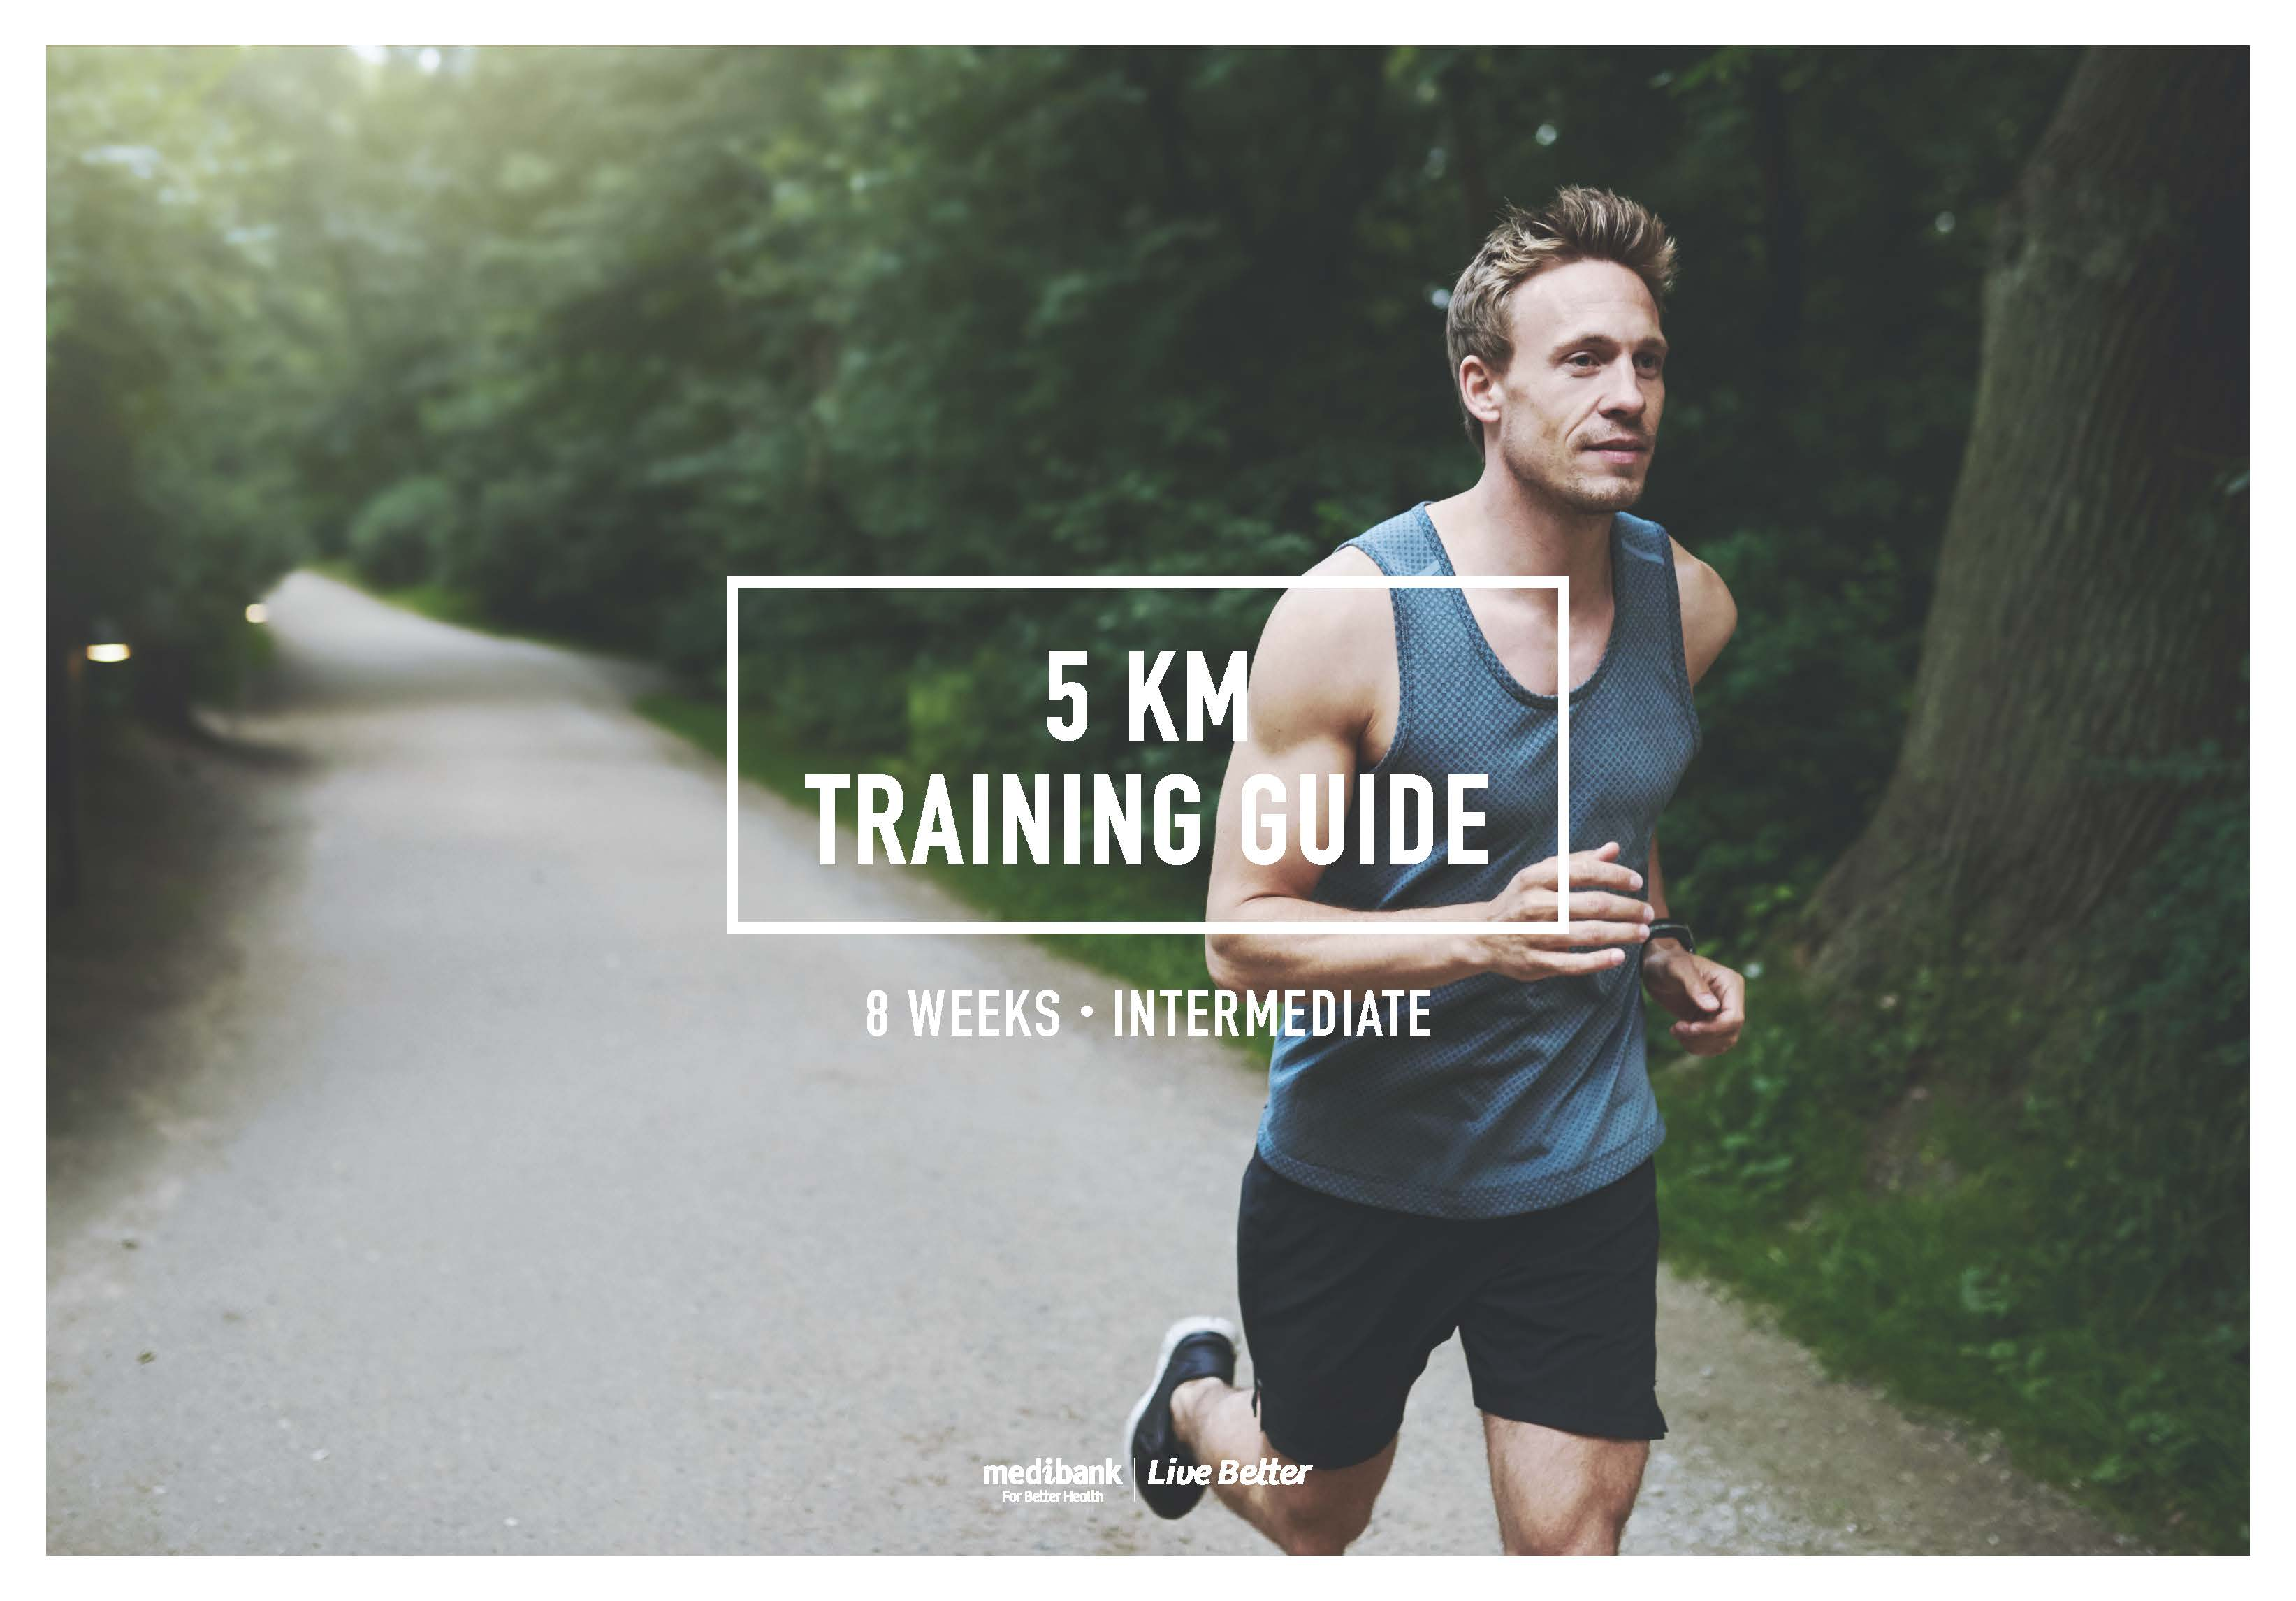 Jogging Run Time 5 Km Training Guide Intermediate 8 Weeks Live Better